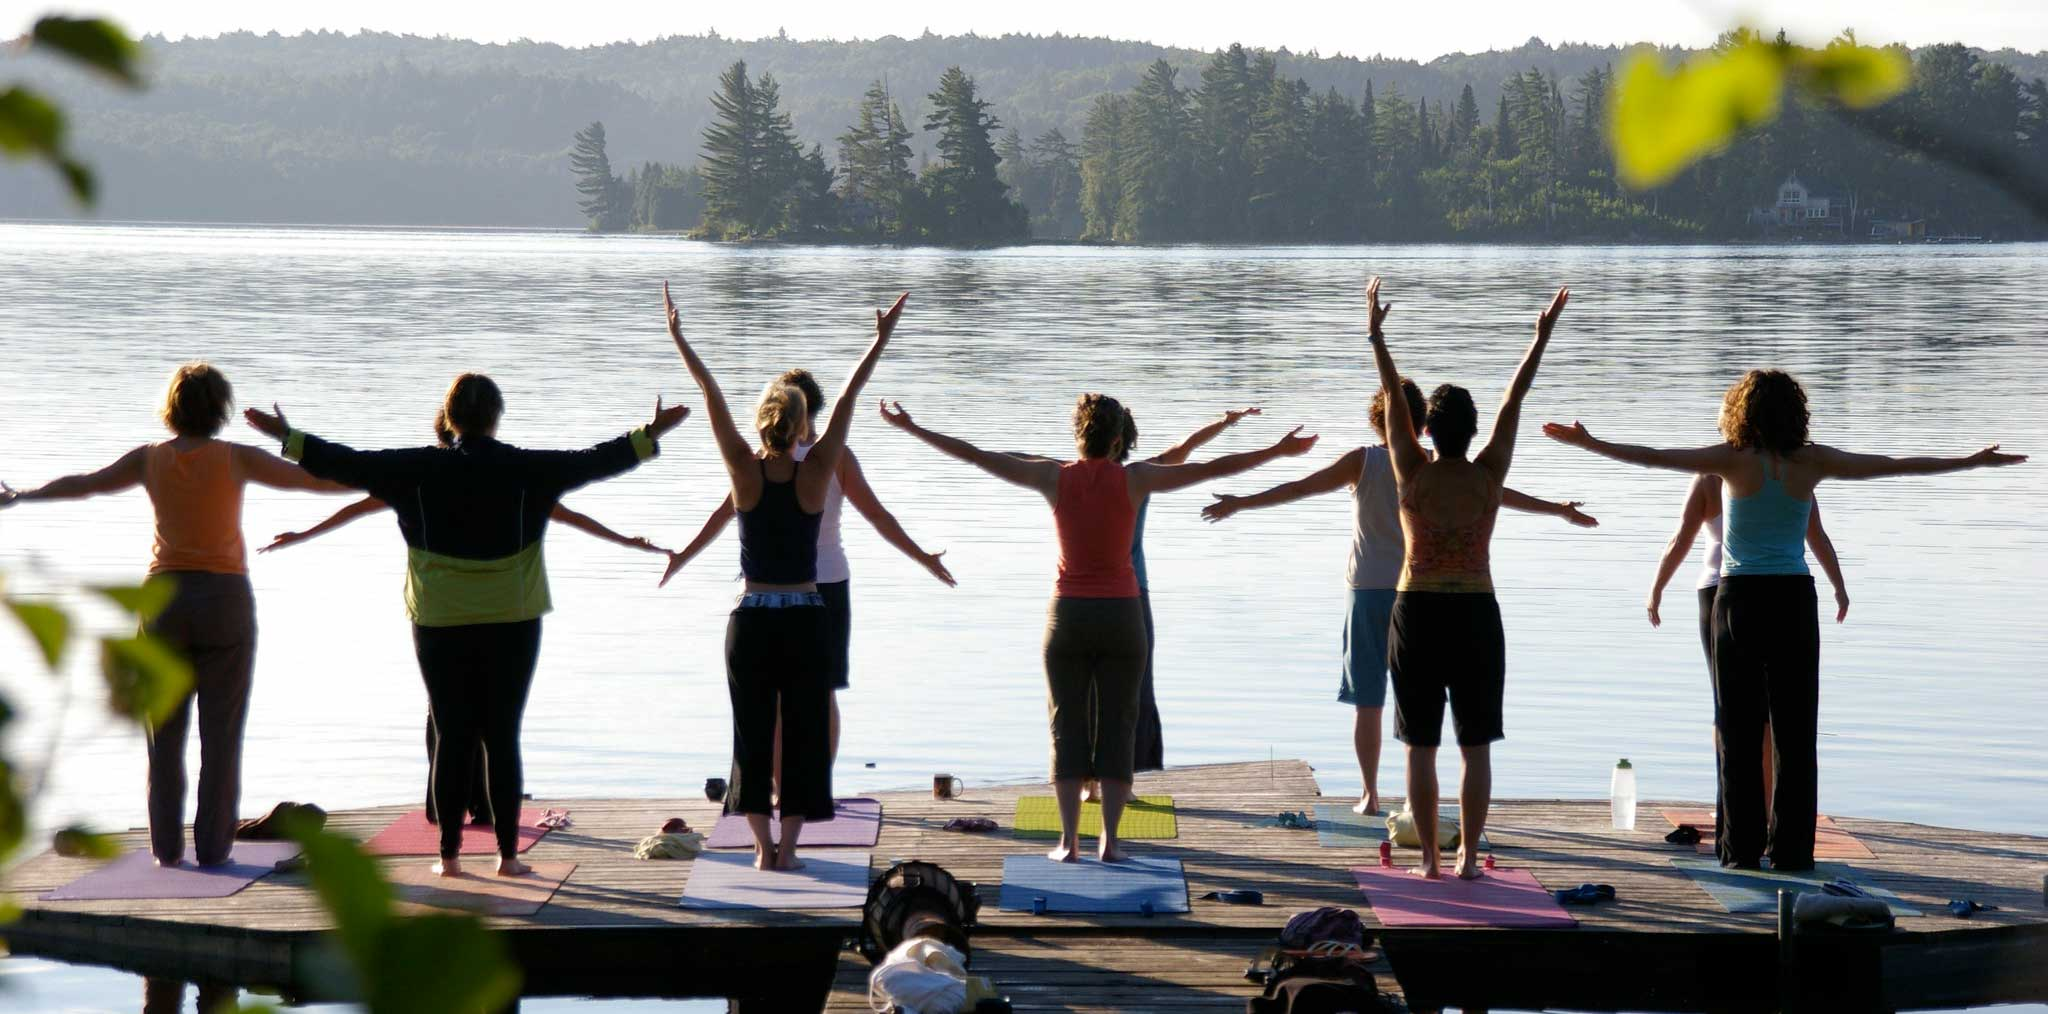 A yoga class on the dock overlooking a lake